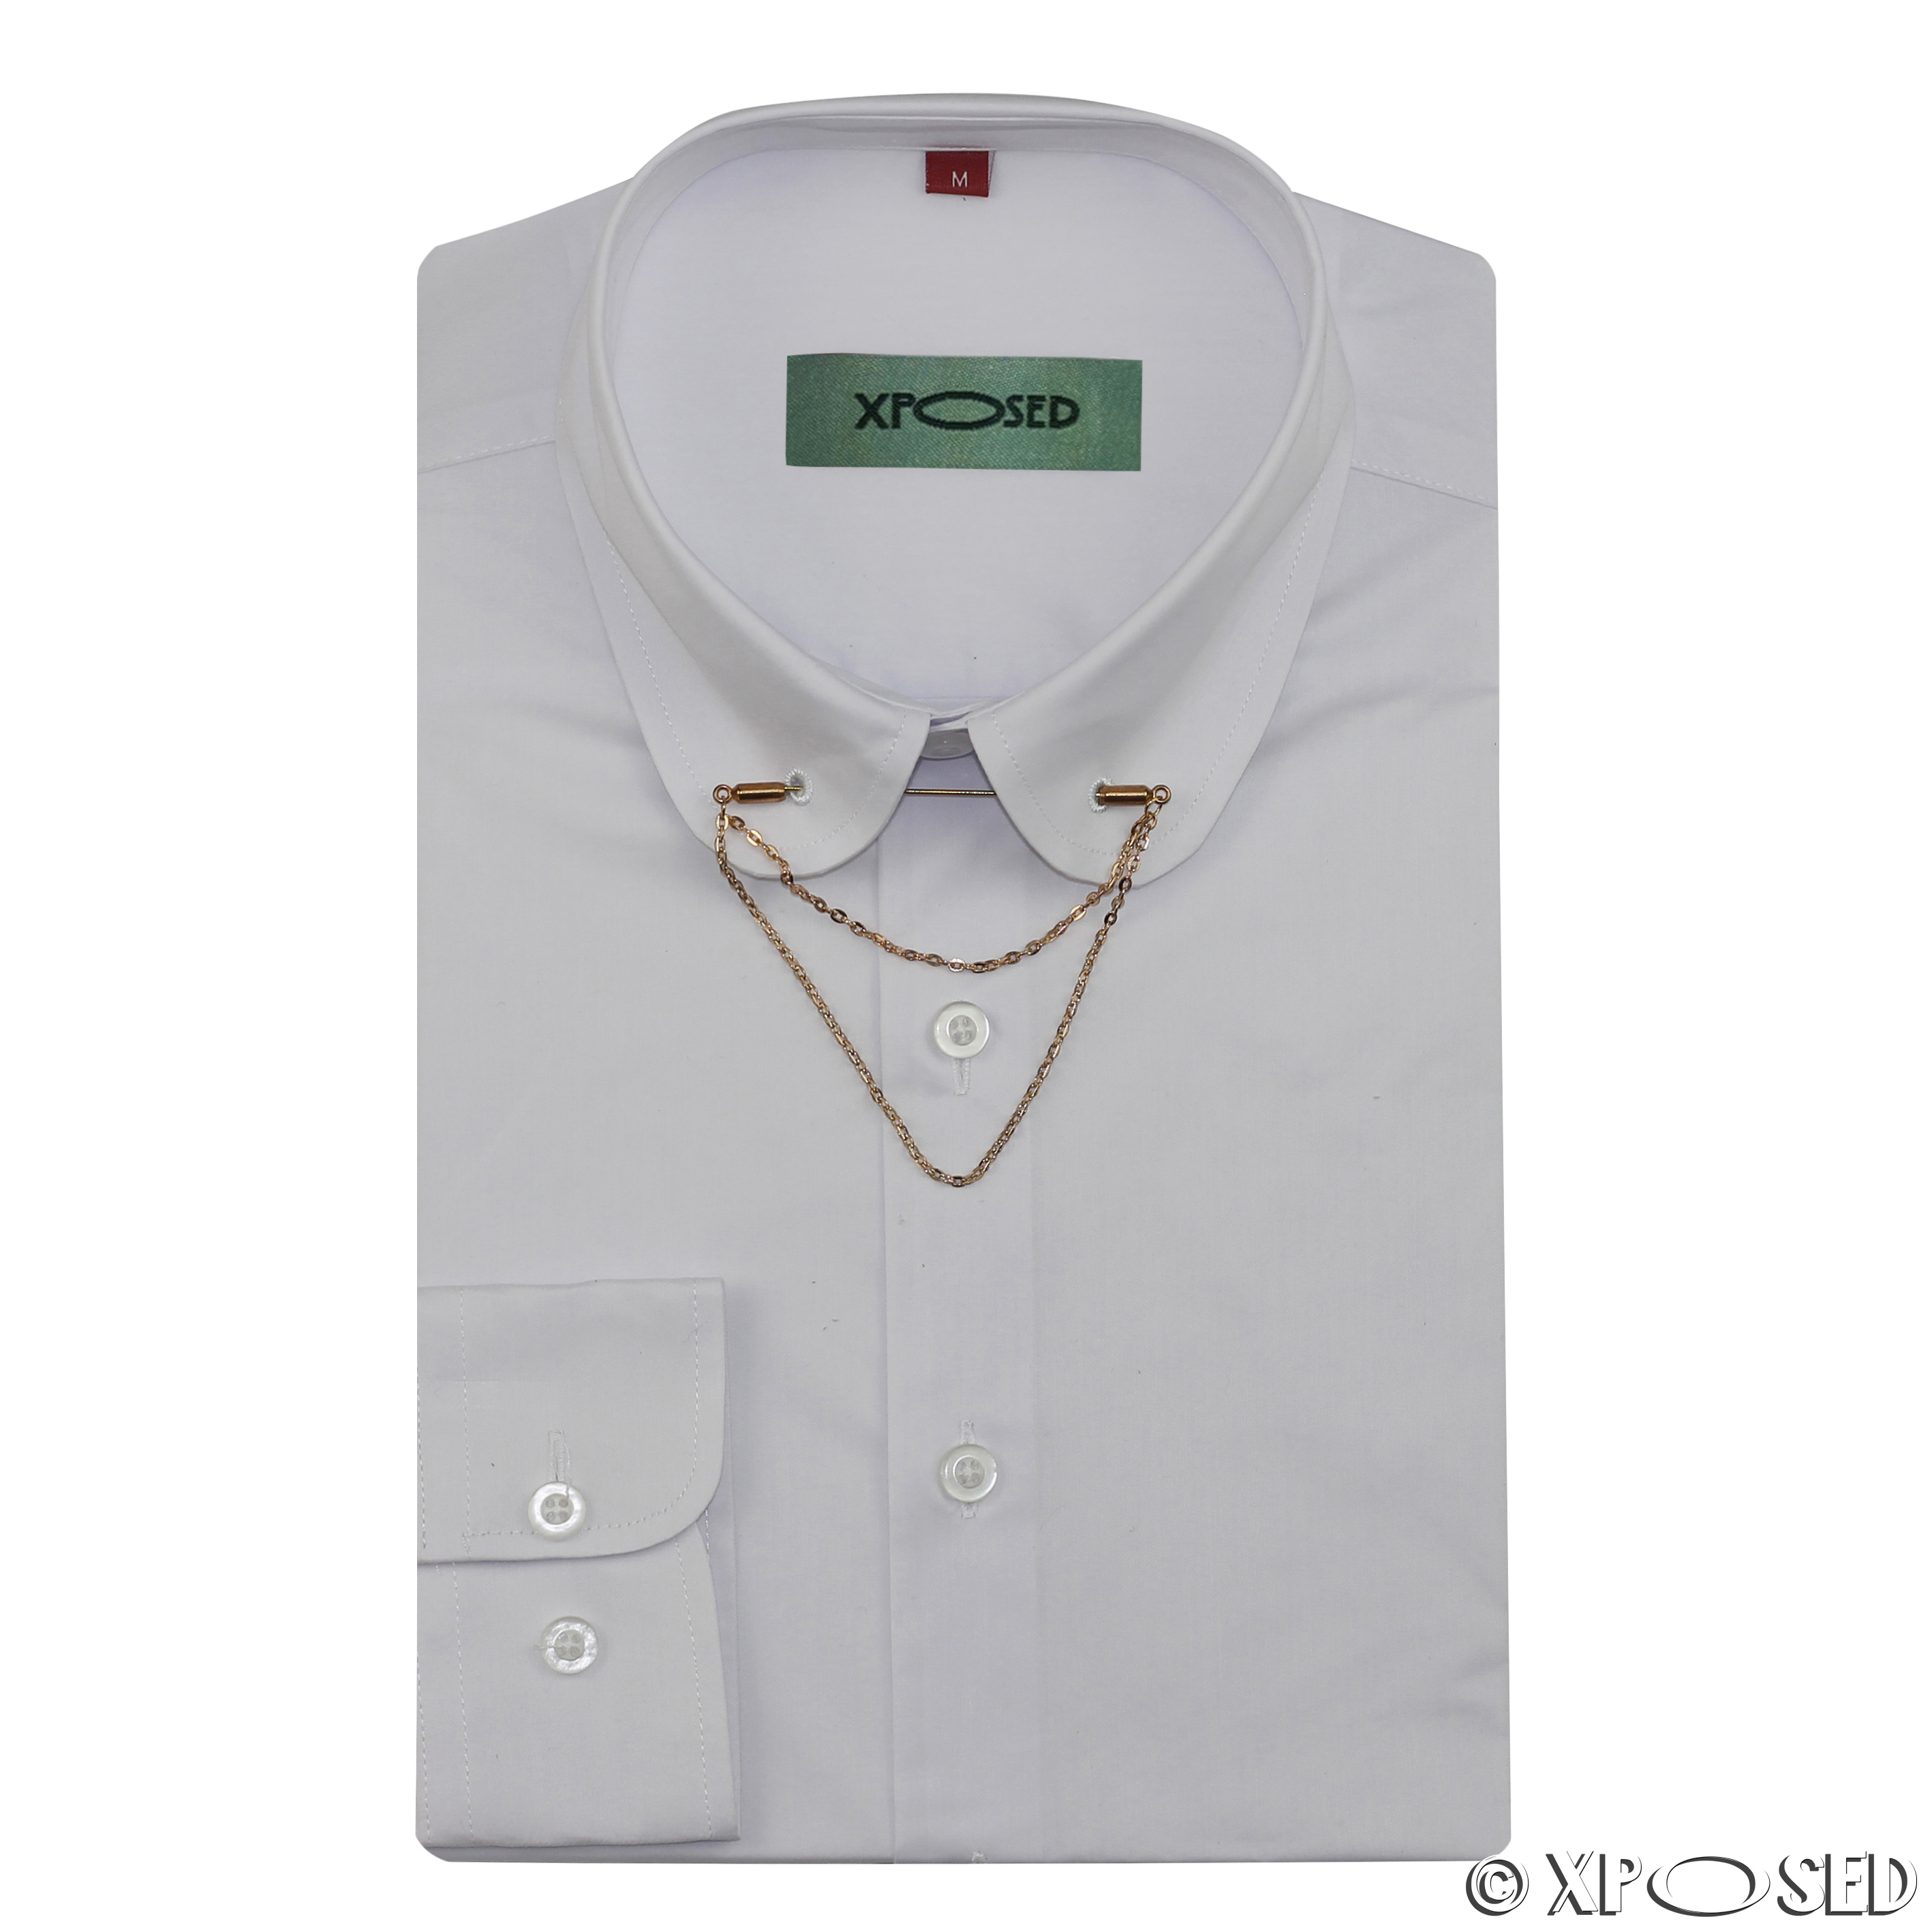 Mens shirt slim fit white black pin collar gold chain tie for White shirt with collar pin